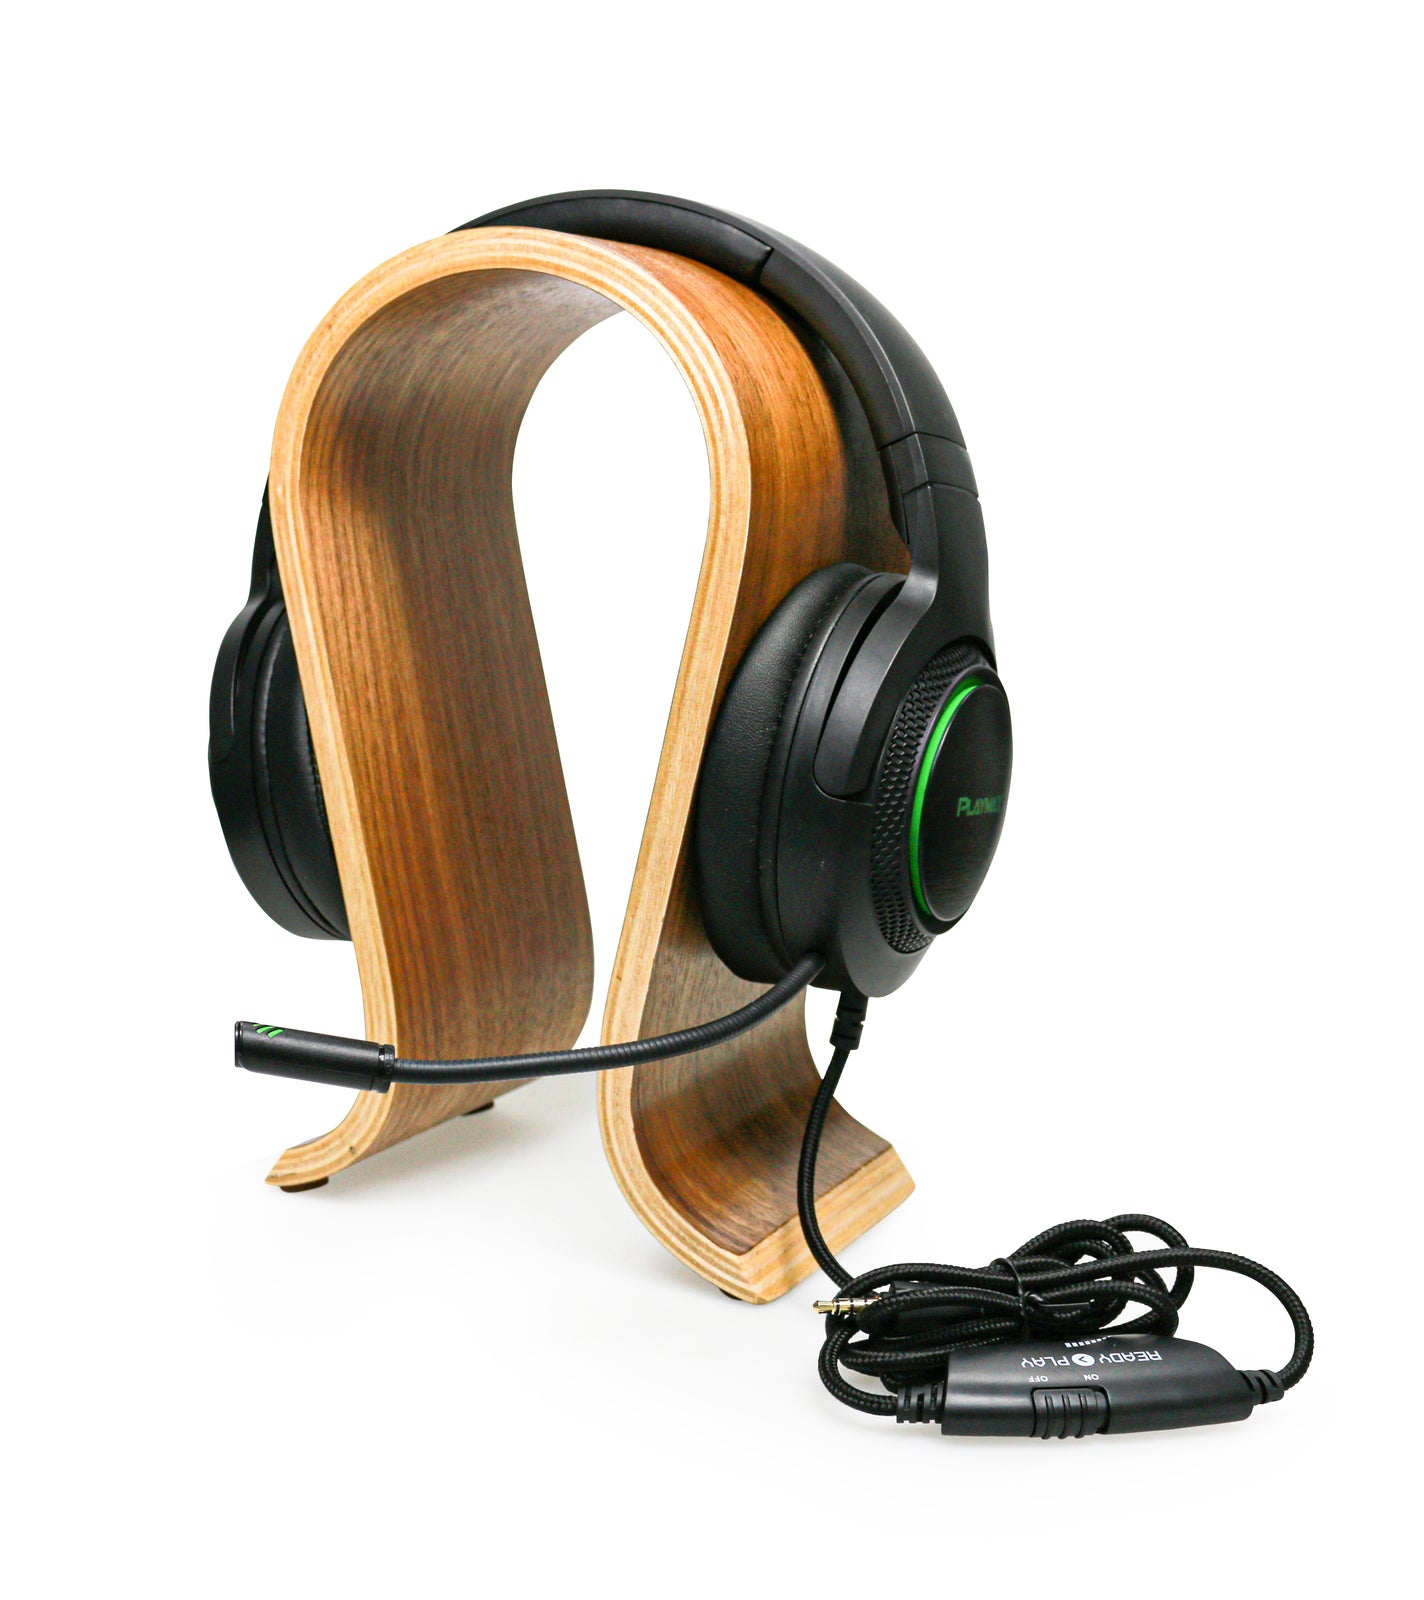 Playmax Wooden Headset Stand - Natural - PC Games